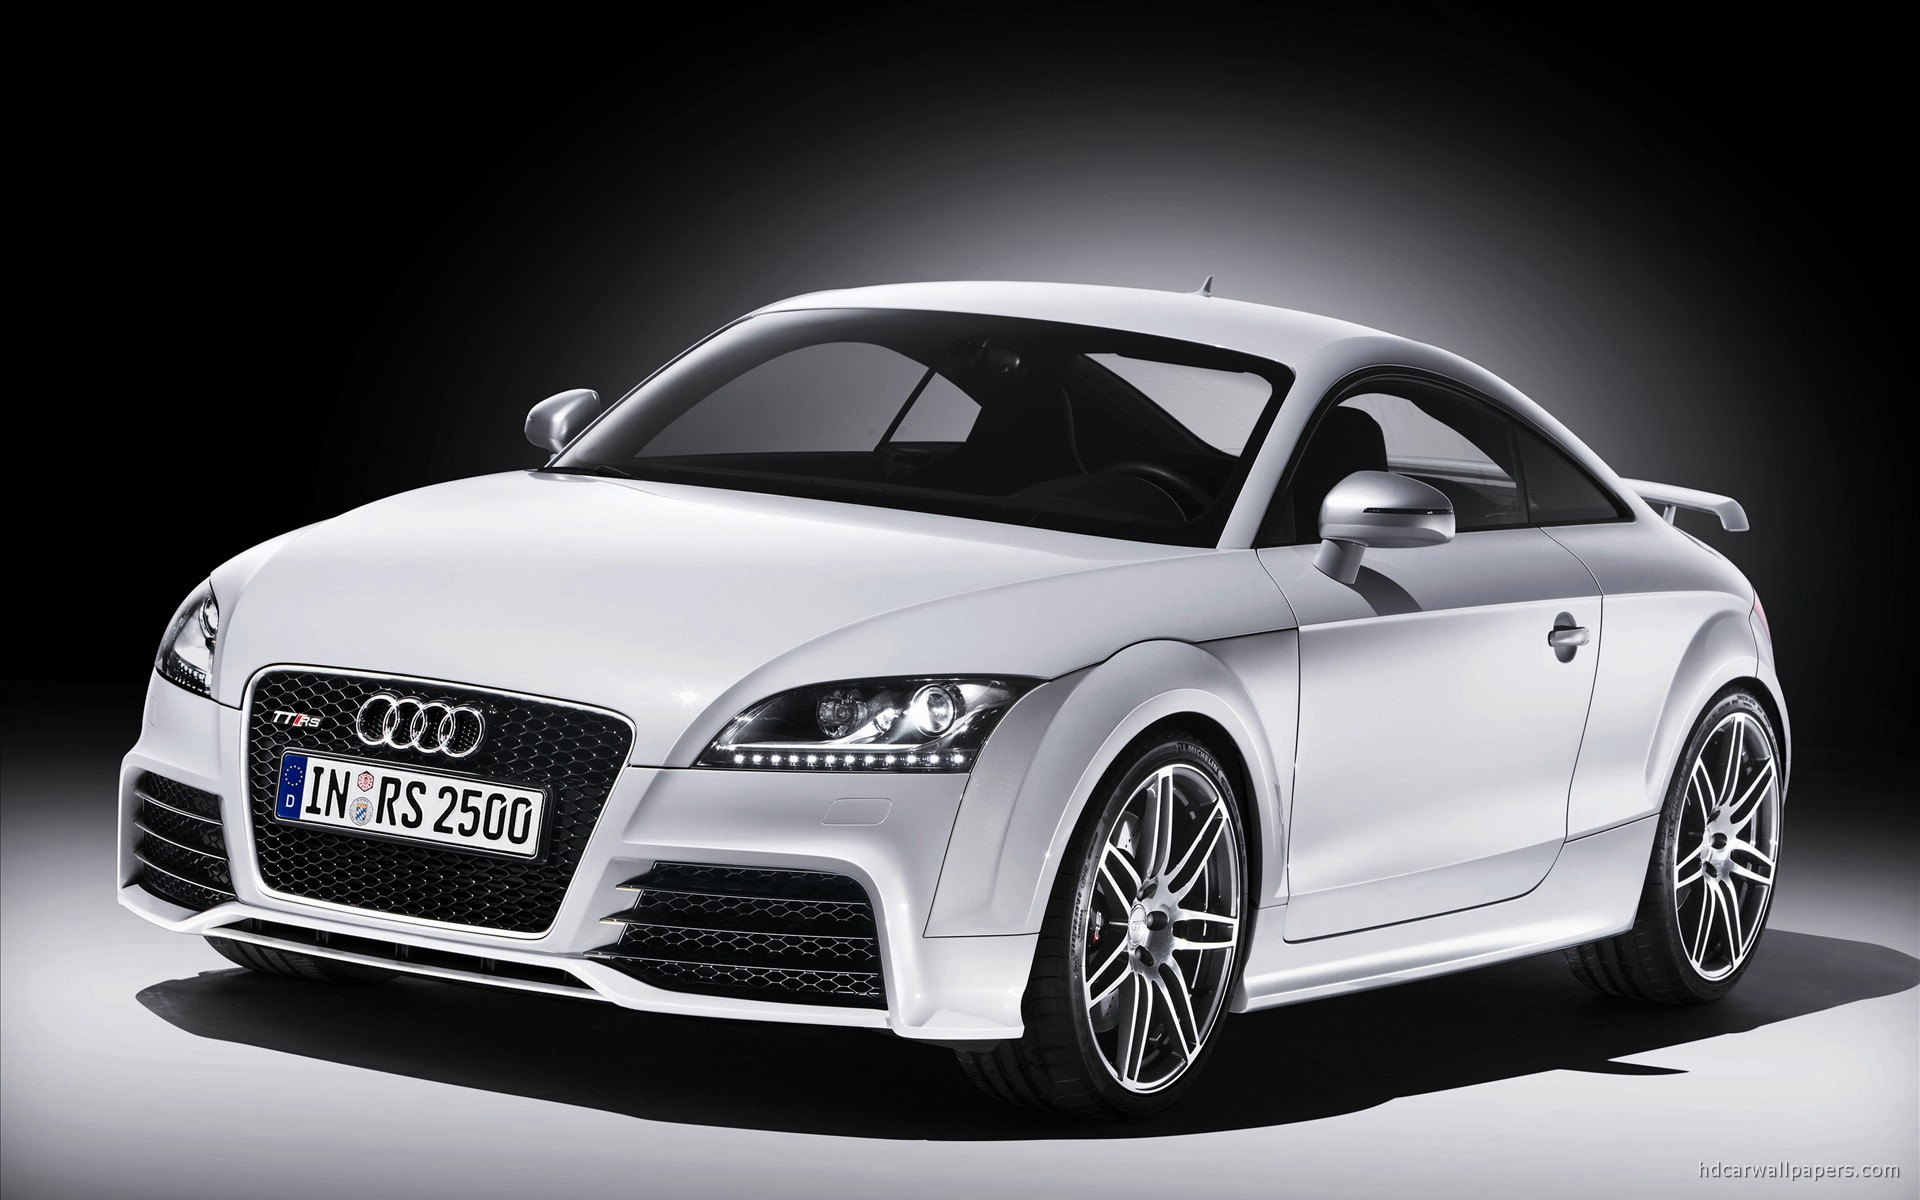 2010 audi tt rs coupe wallpaper hd car wallpapers id 133. Black Bedroom Furniture Sets. Home Design Ideas